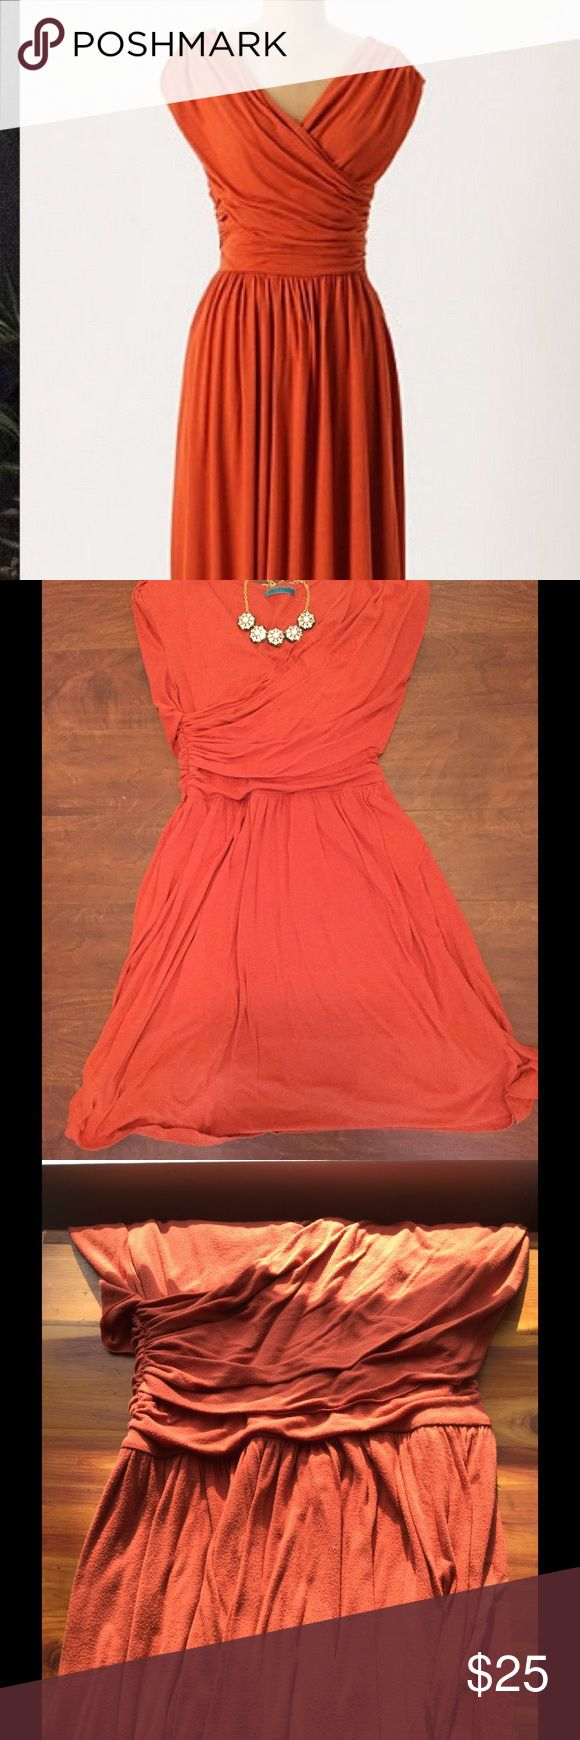 """⚡️FLASH SALE⚡️Orange Whirligig Dress Beautiful faux-wrap burnt orange dress from Anthro, brand is Velvet. Comfortable and soft! Well loved with some pilling (See fourth photo for close up) but still very wearable. Stretchy with side ruching and cap sleeves. Approx 40in long shoulder to hem, hits at my knees and I'm 5'7"""". 50% rayon, 50% polyester. Offers welcome! Check out my bundle discounts! Anthropologie Dresses Midi"""